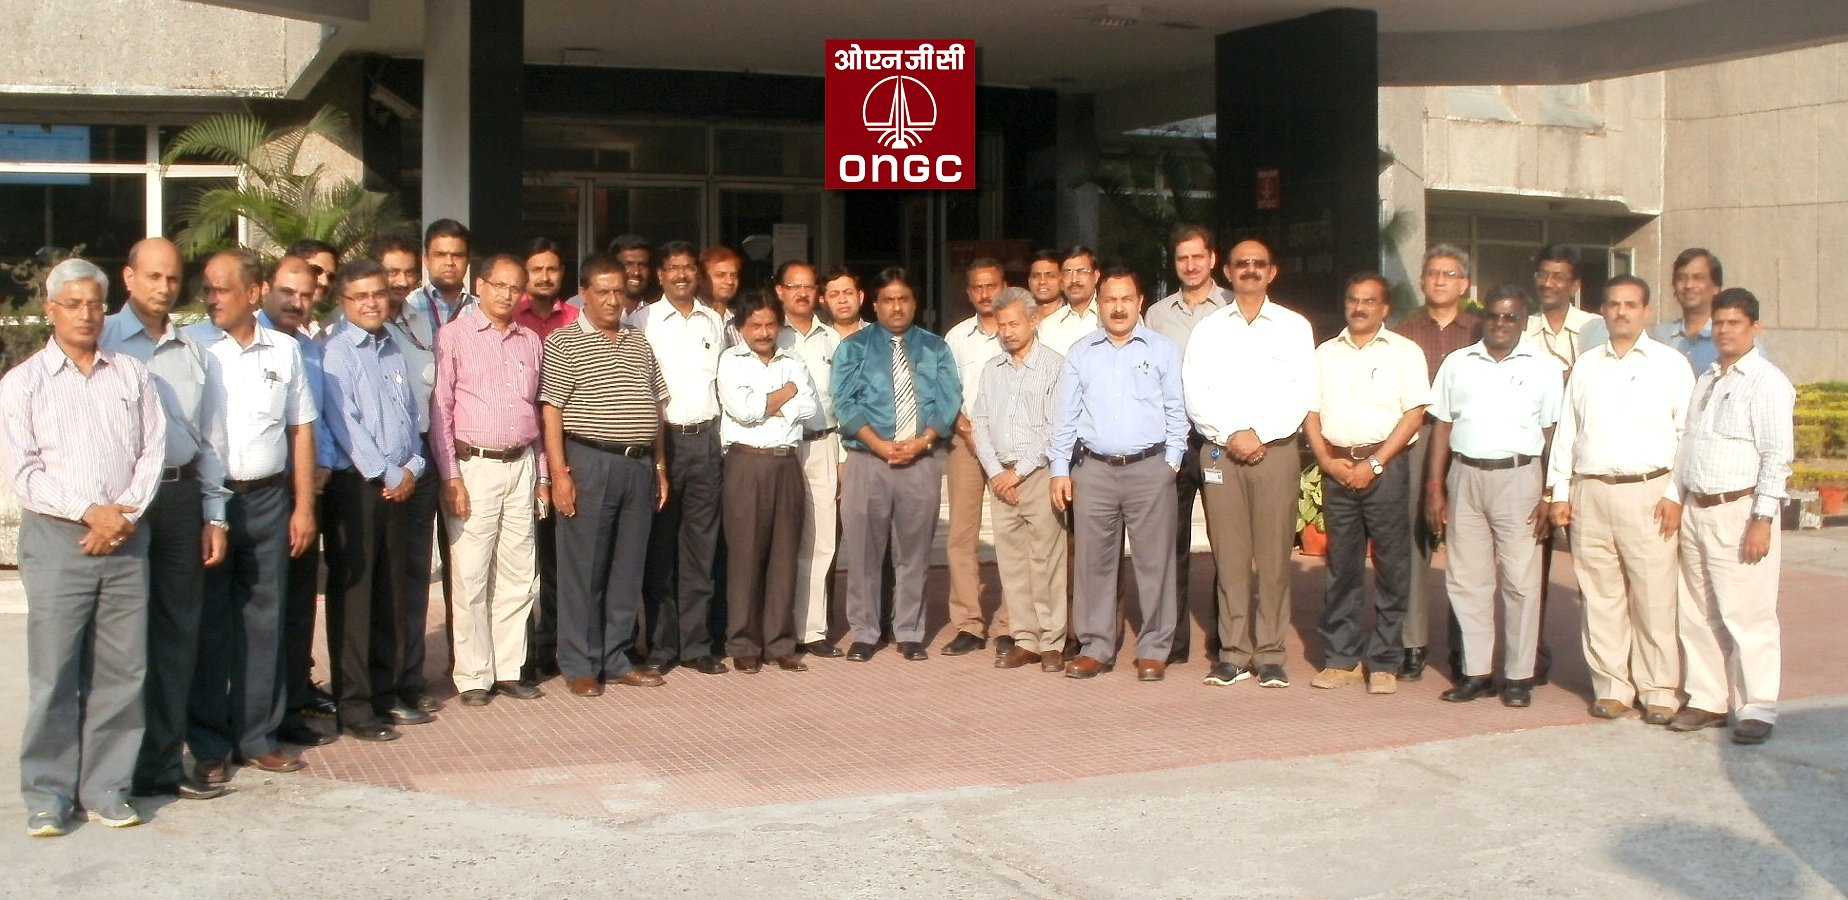 ONGC_PMP_Batch02_22OCT